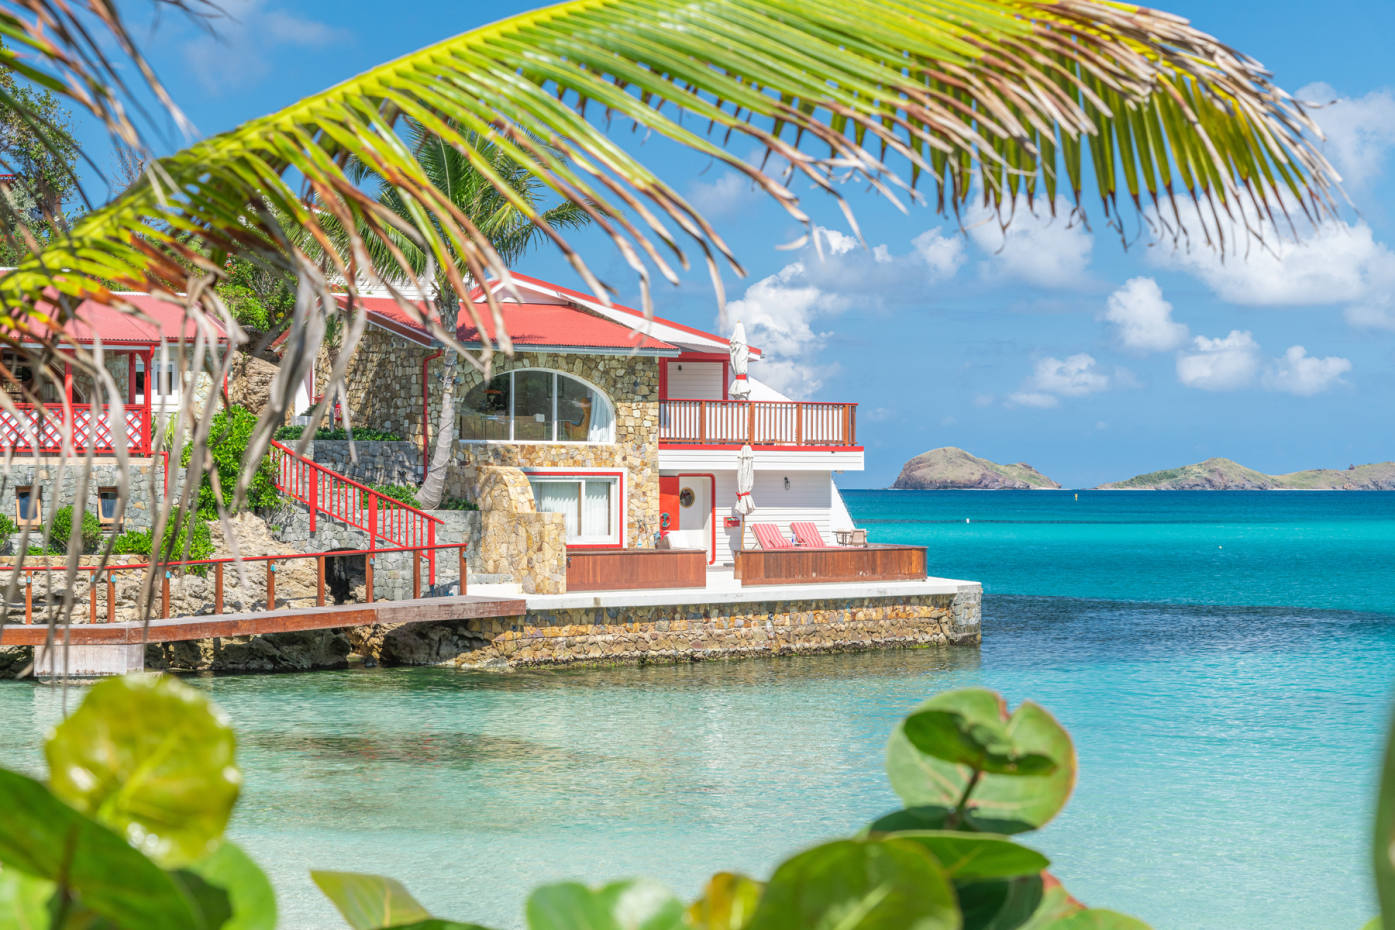 Eden Being, the e-shop for Eden Rock in St Barths, is the destination if you're dreaming of far-flung shores